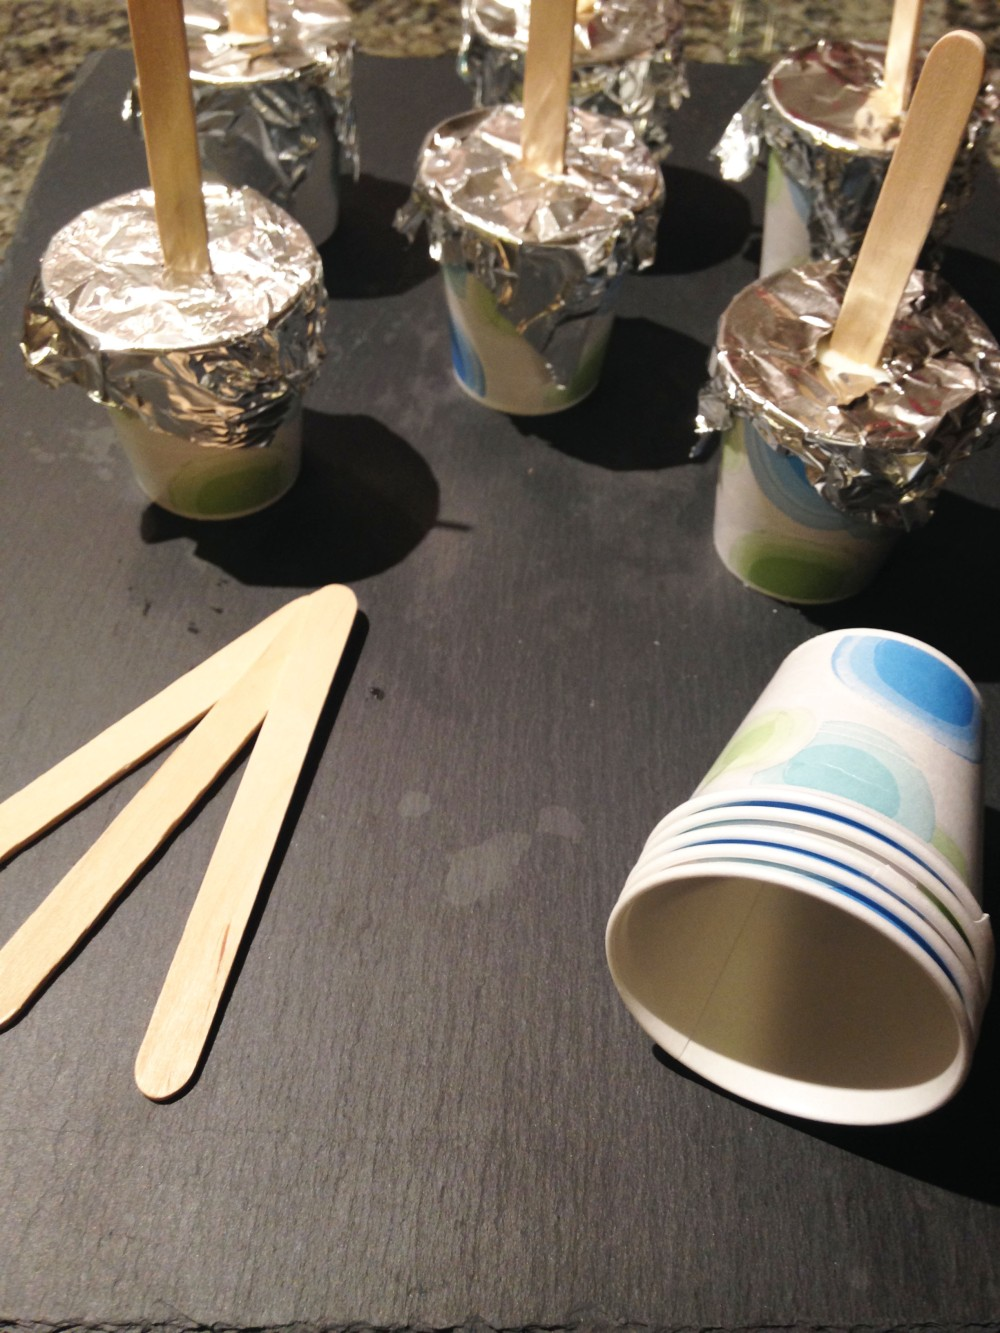 Popsicles cups and sticks